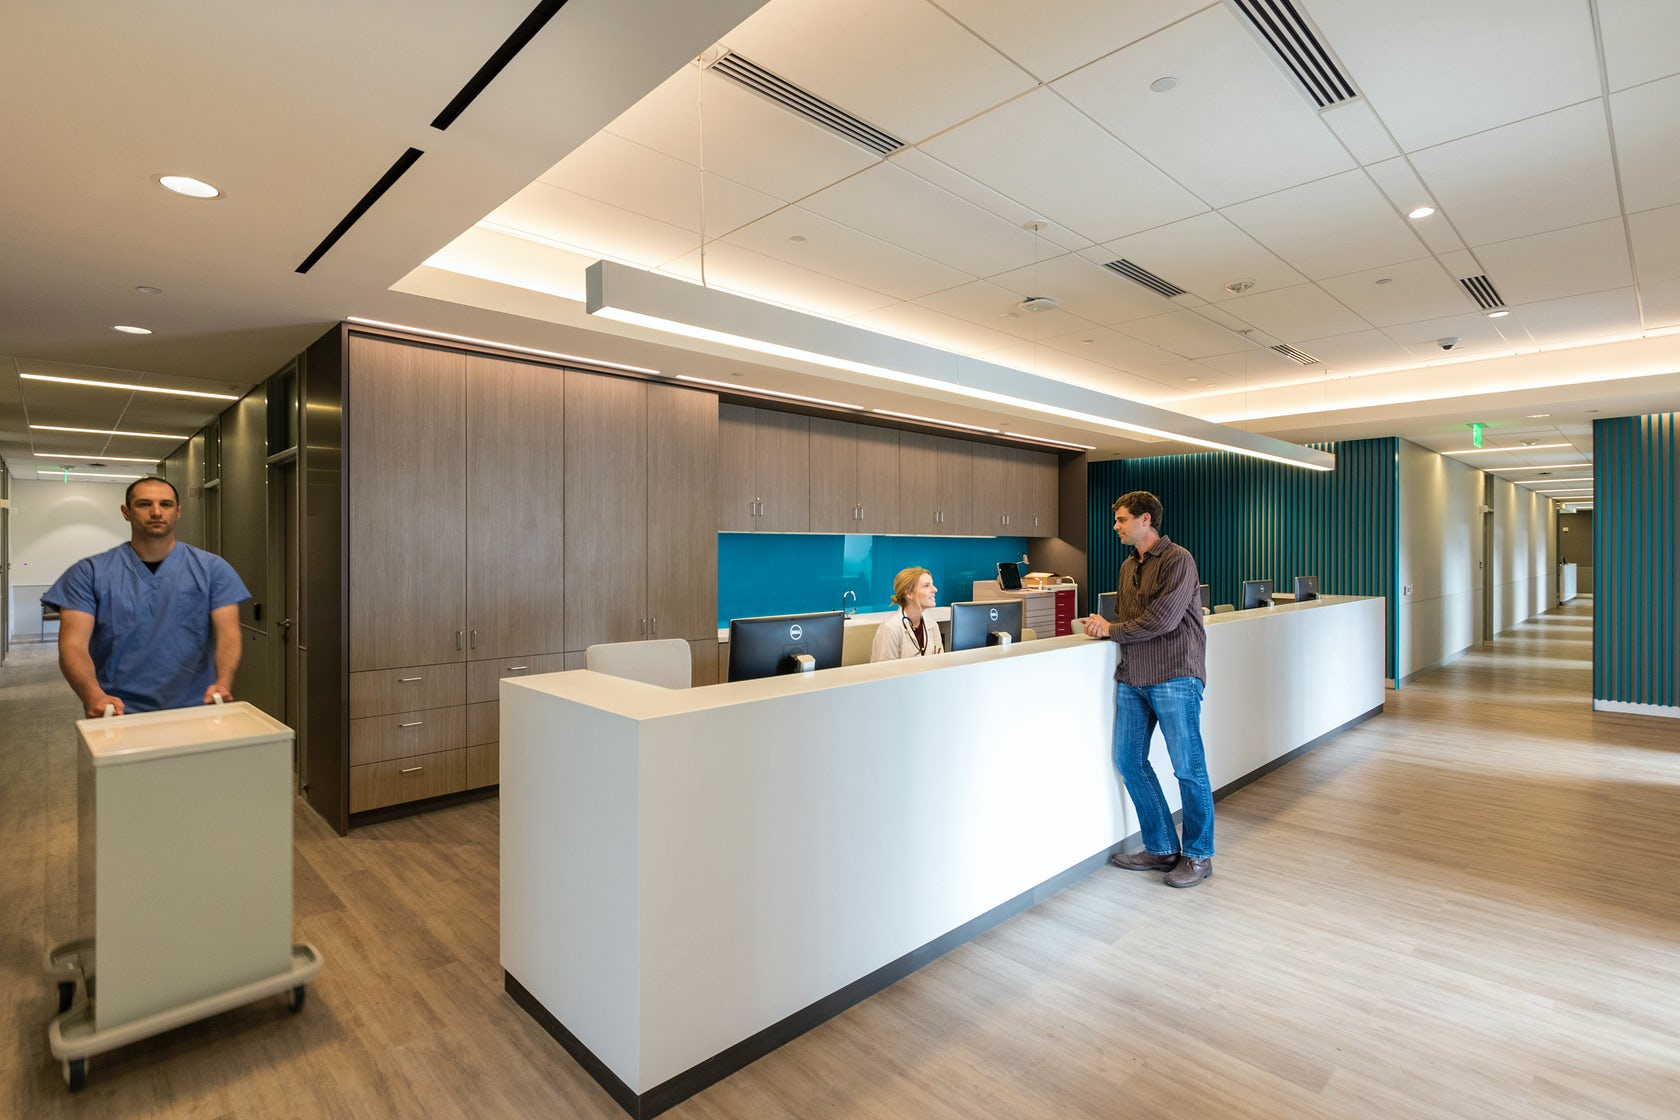 Cedars Sinai Urgent Care on Architizer